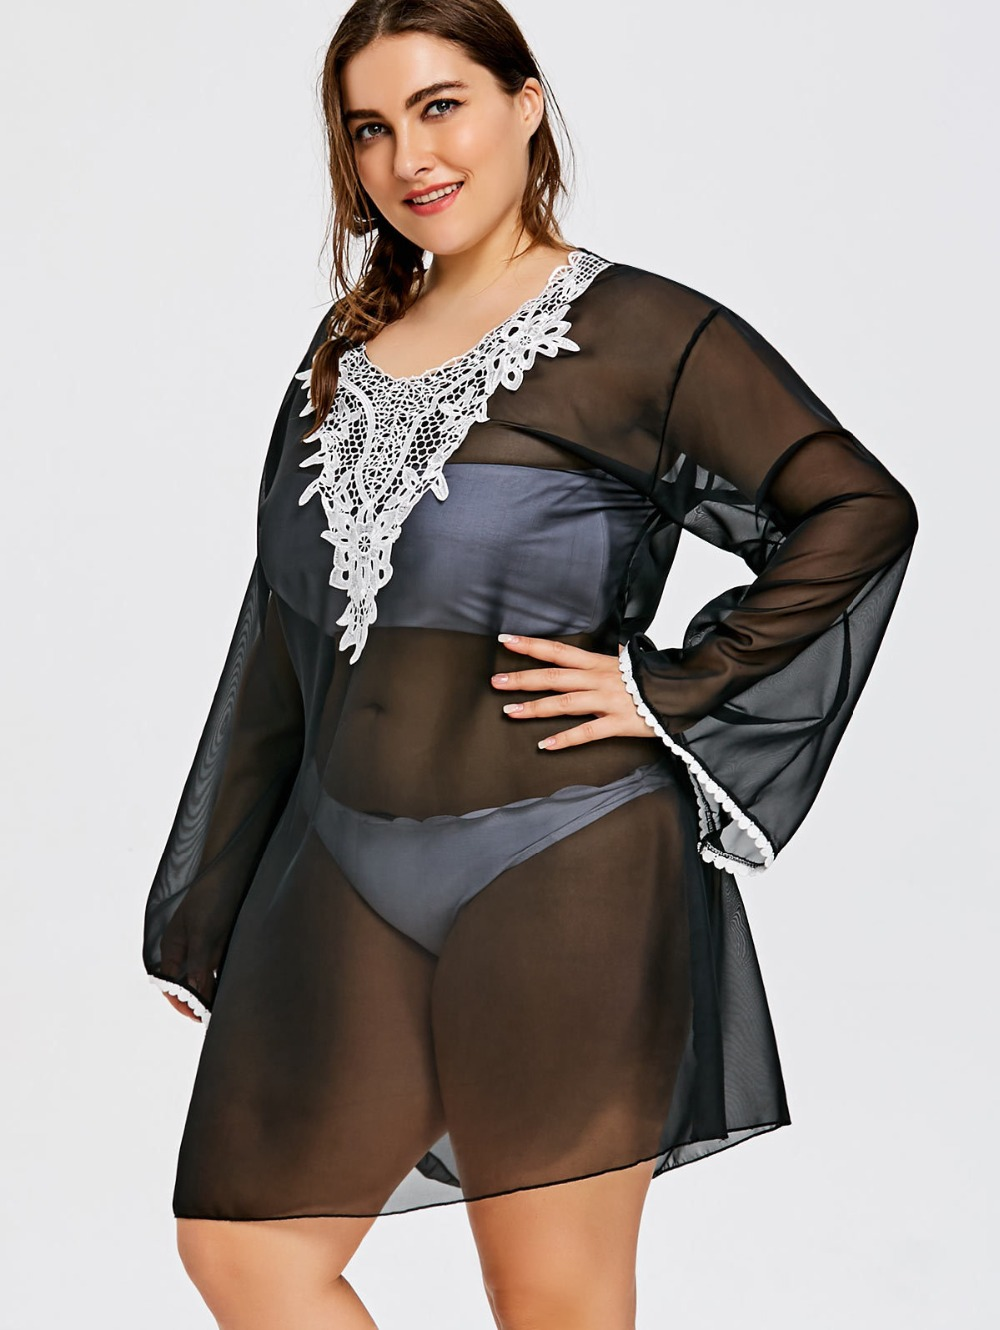 Plus Size Chiffon Bell Sleeve Lace Floral Larger Size Swimwear Tank Cover up Tunic Black Beach Dress For Women